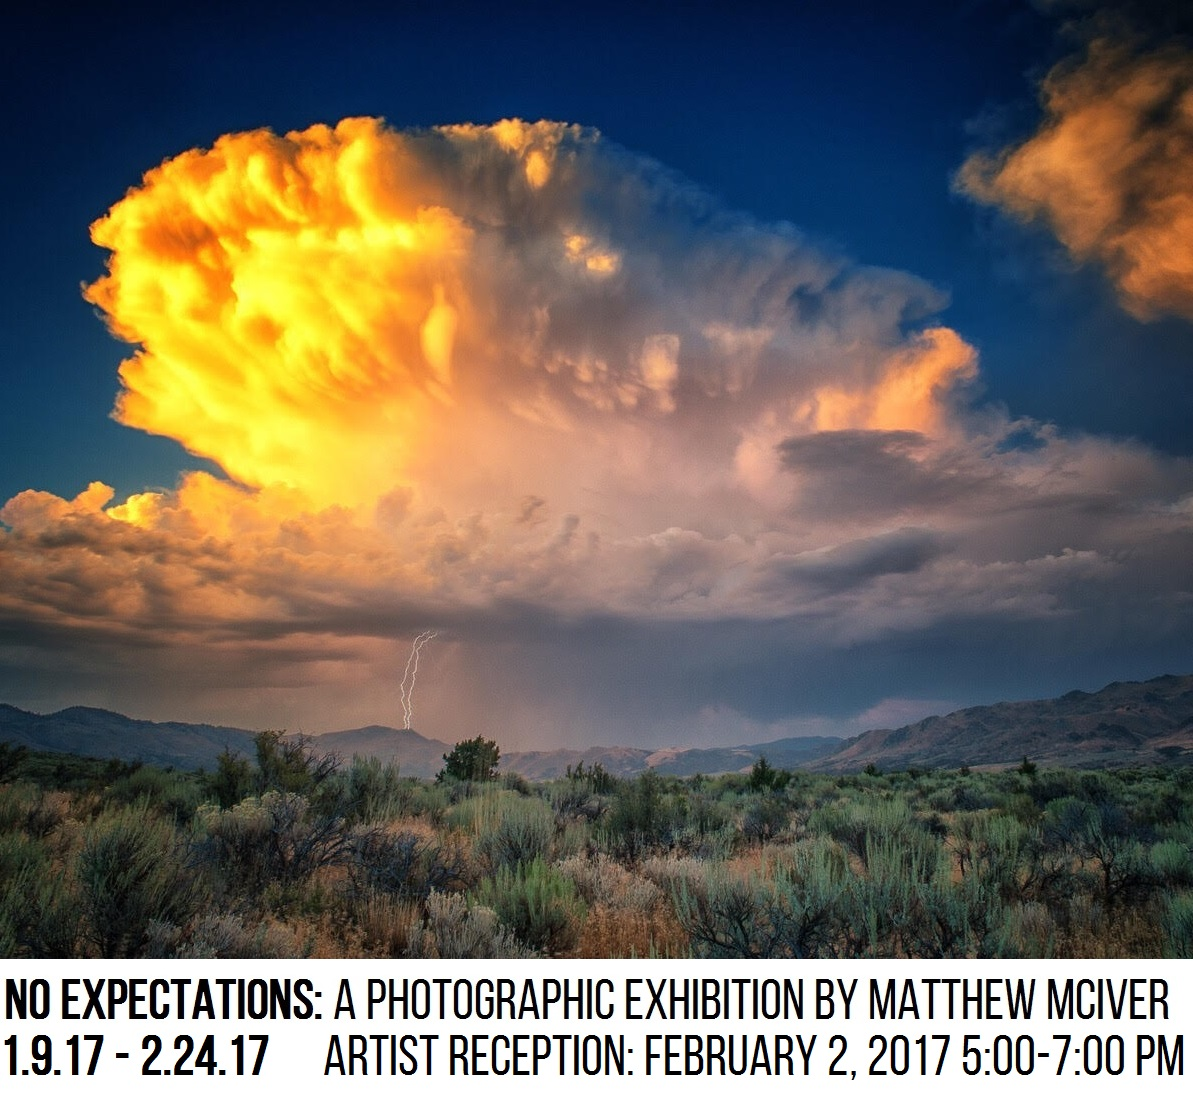 Image of Yellow and orange clouds in a blue sky above a desert scene with sagebrush with text underneath reading No Expectations: A Photographic Exhibition by Matthew McIver